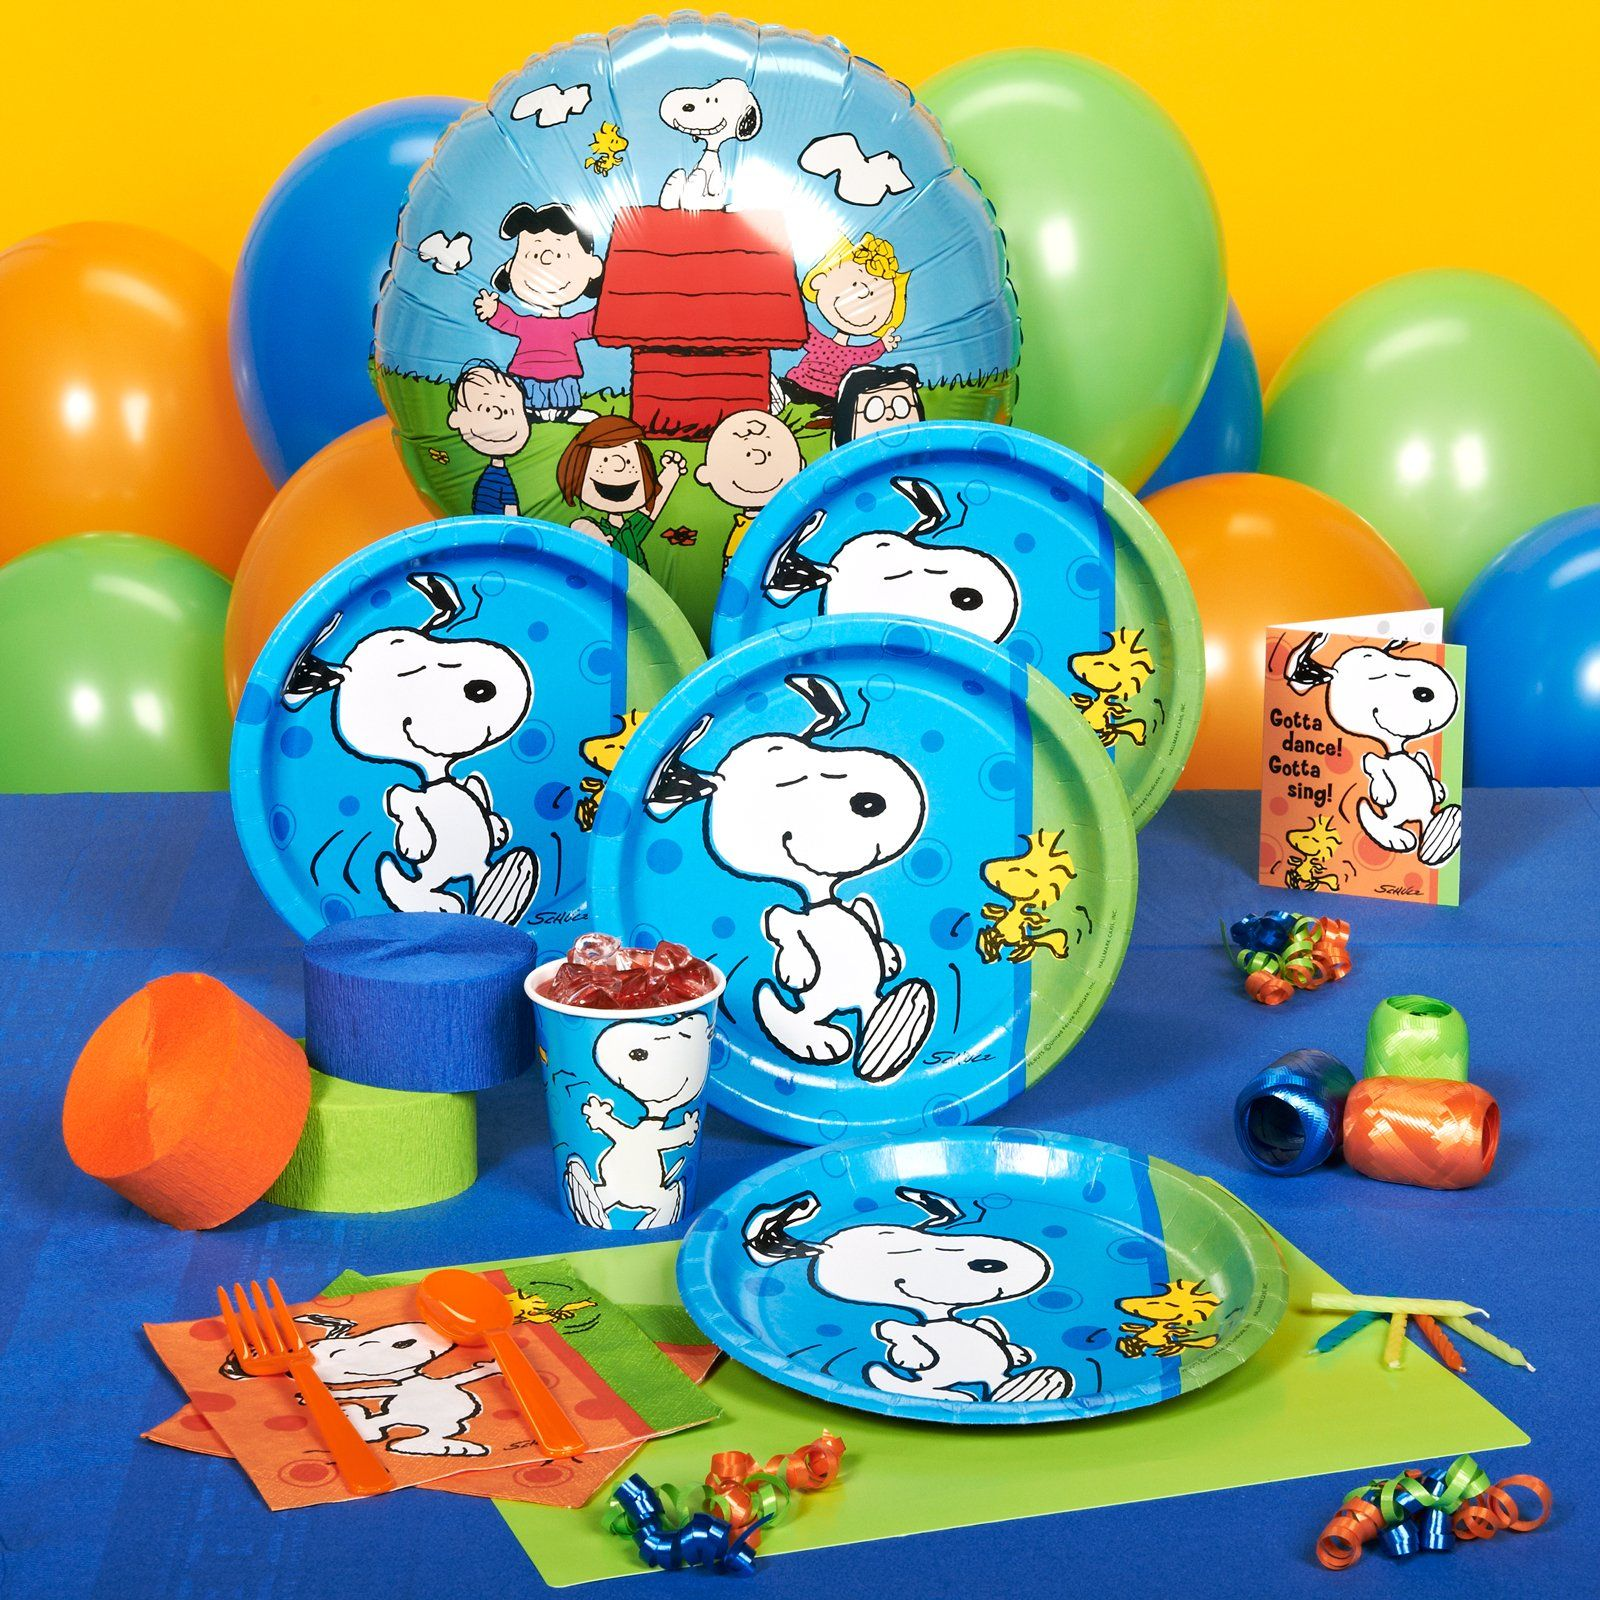 Birthday Supplies Snoopy Birthday Party Supplies Peanuts Snoopy Party